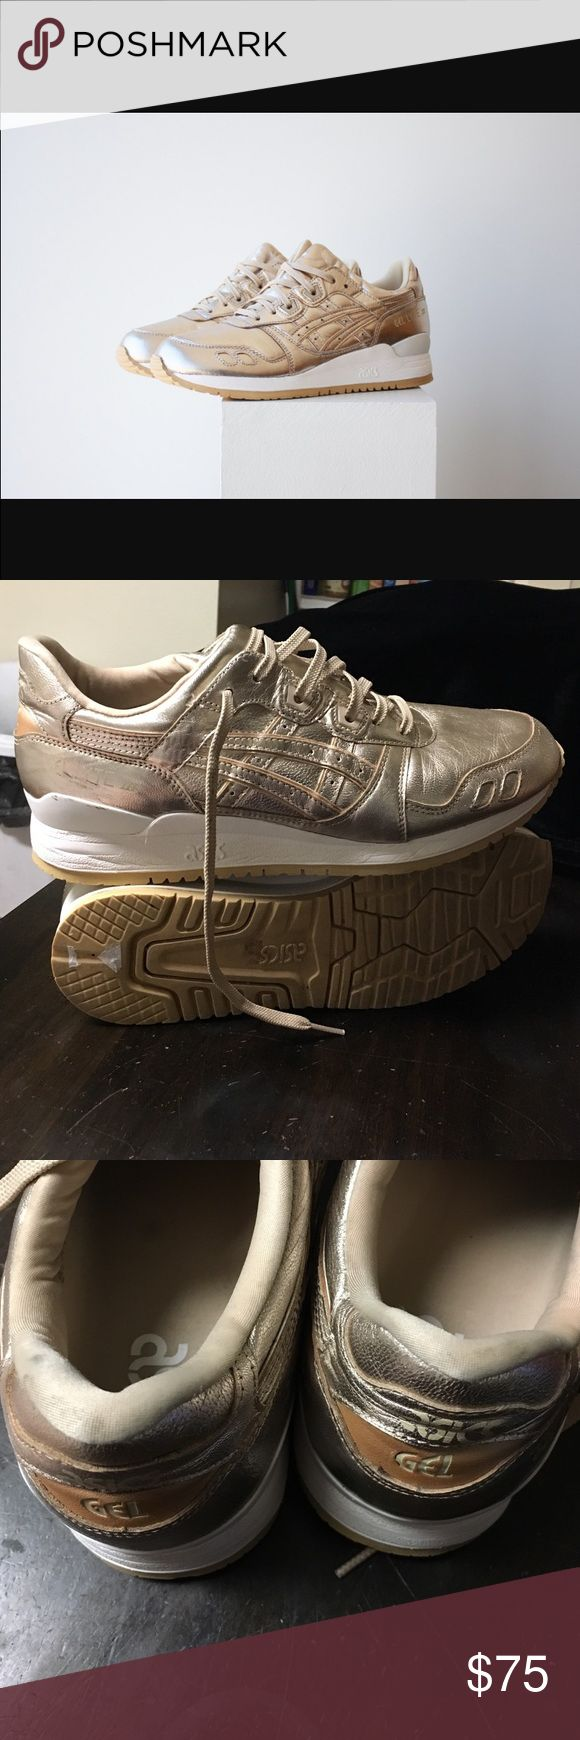 Champagne Gel Lyte III Asics Champagne/gold colored Gel Lyte III Asics sneakers. In excellent condition, worn not a few times. Small scuffs shown in second and third photo, other than that these are like new. Size 9.5. Open to offers; bundles discounted! Asics Shoes Sneakers